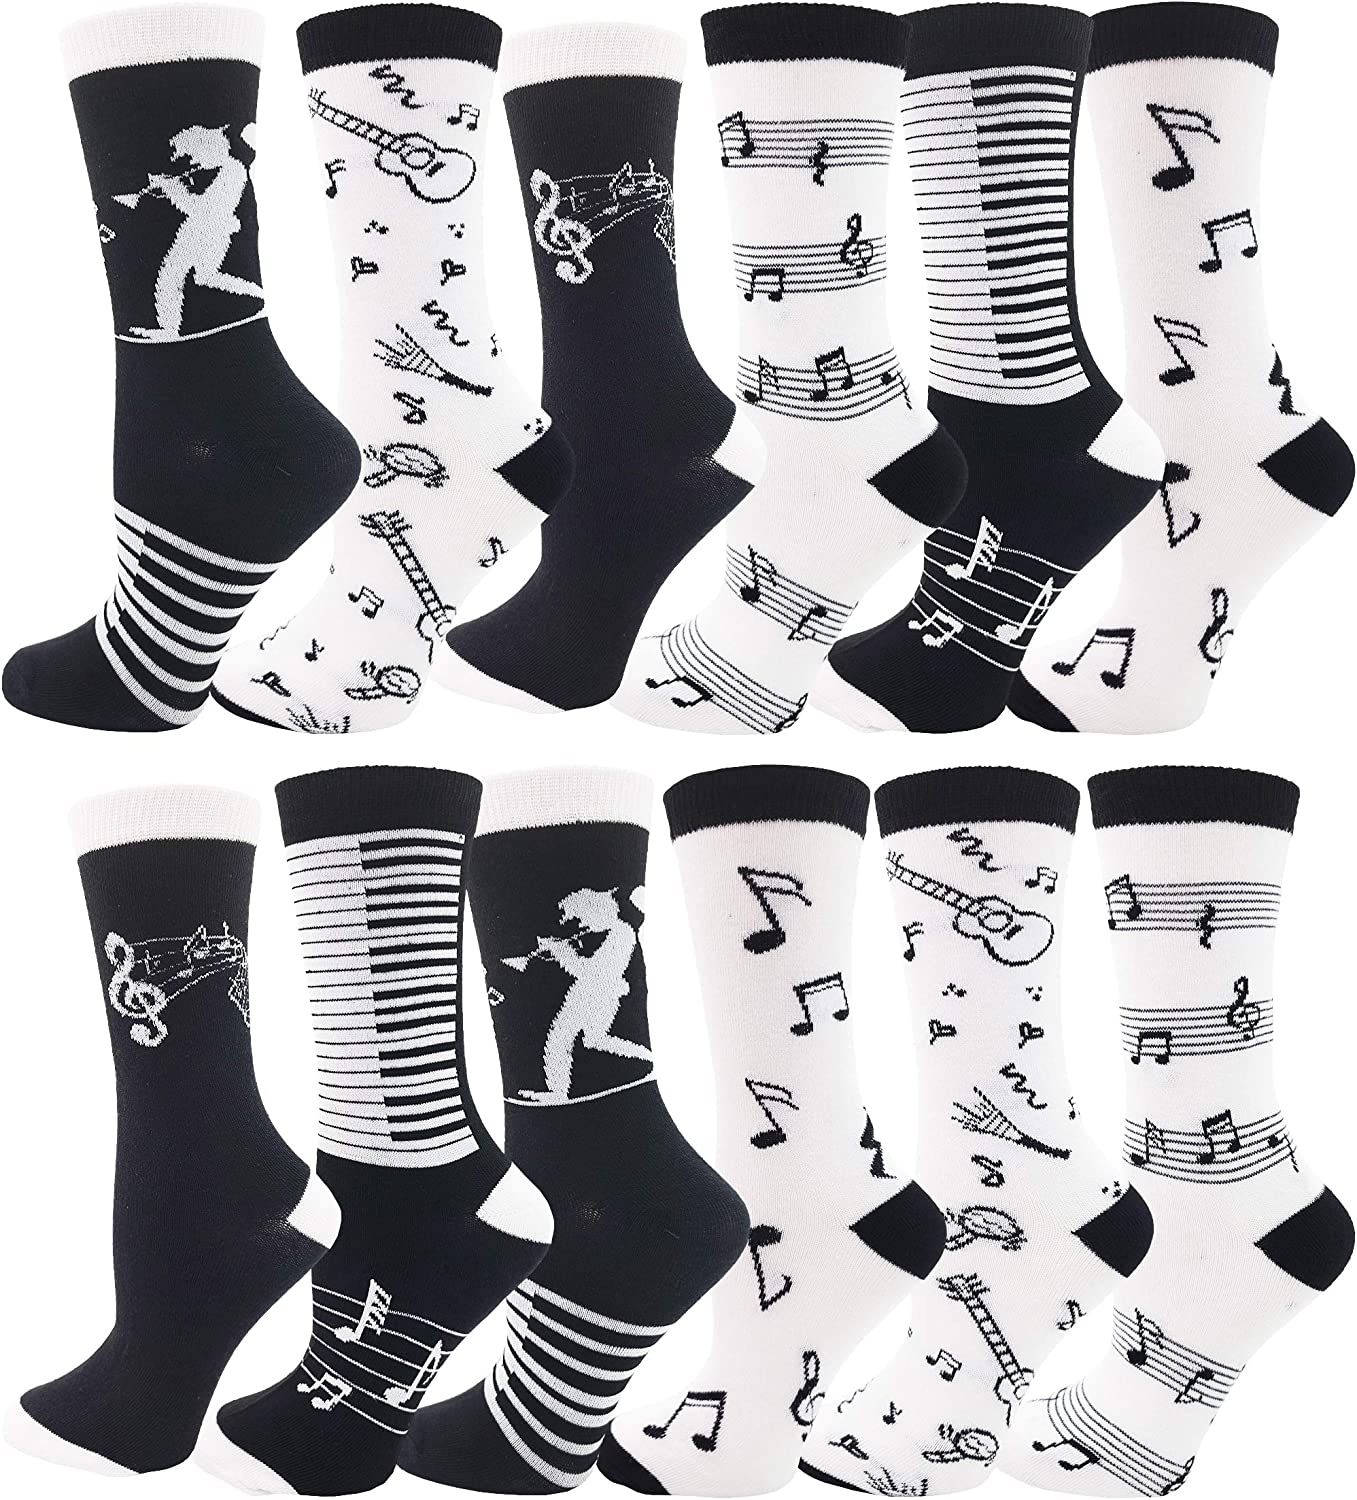 Womens Novelty Socks, 12 Pairs, Soft & Comfortable, Cute Colorful Patterned Sock Bulk Pack